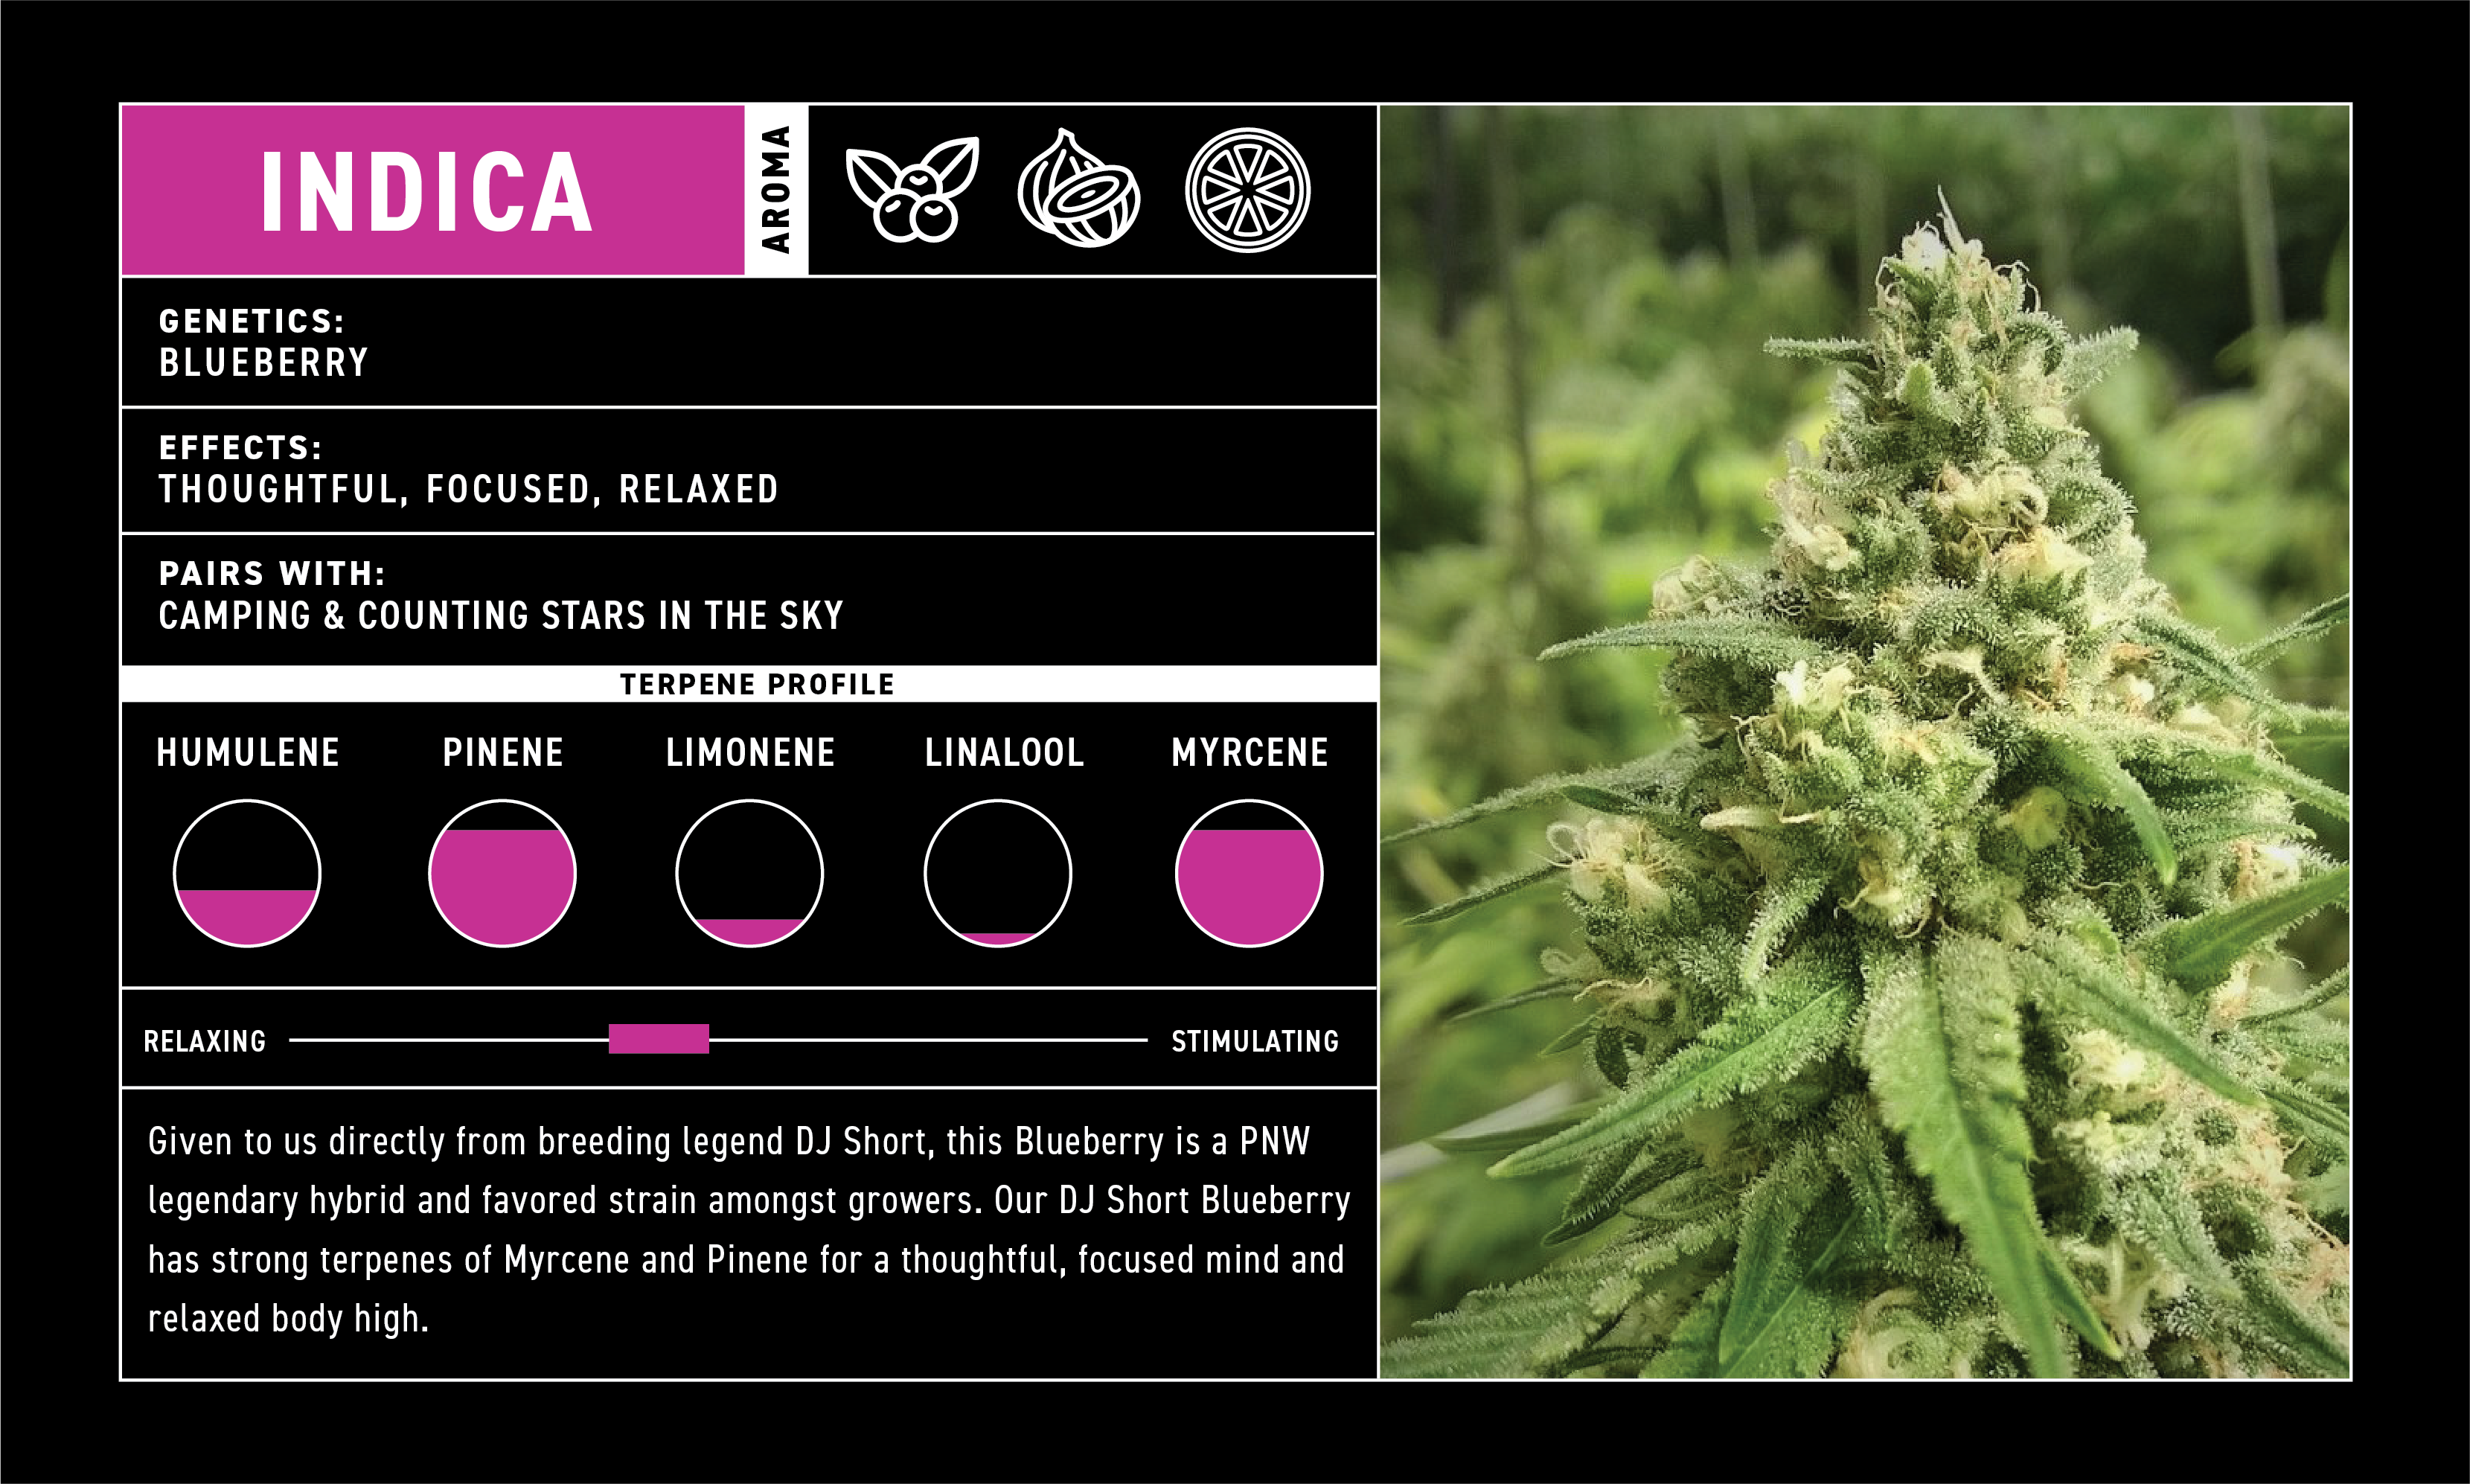 Images of different varieties of cannabis flavours on offer